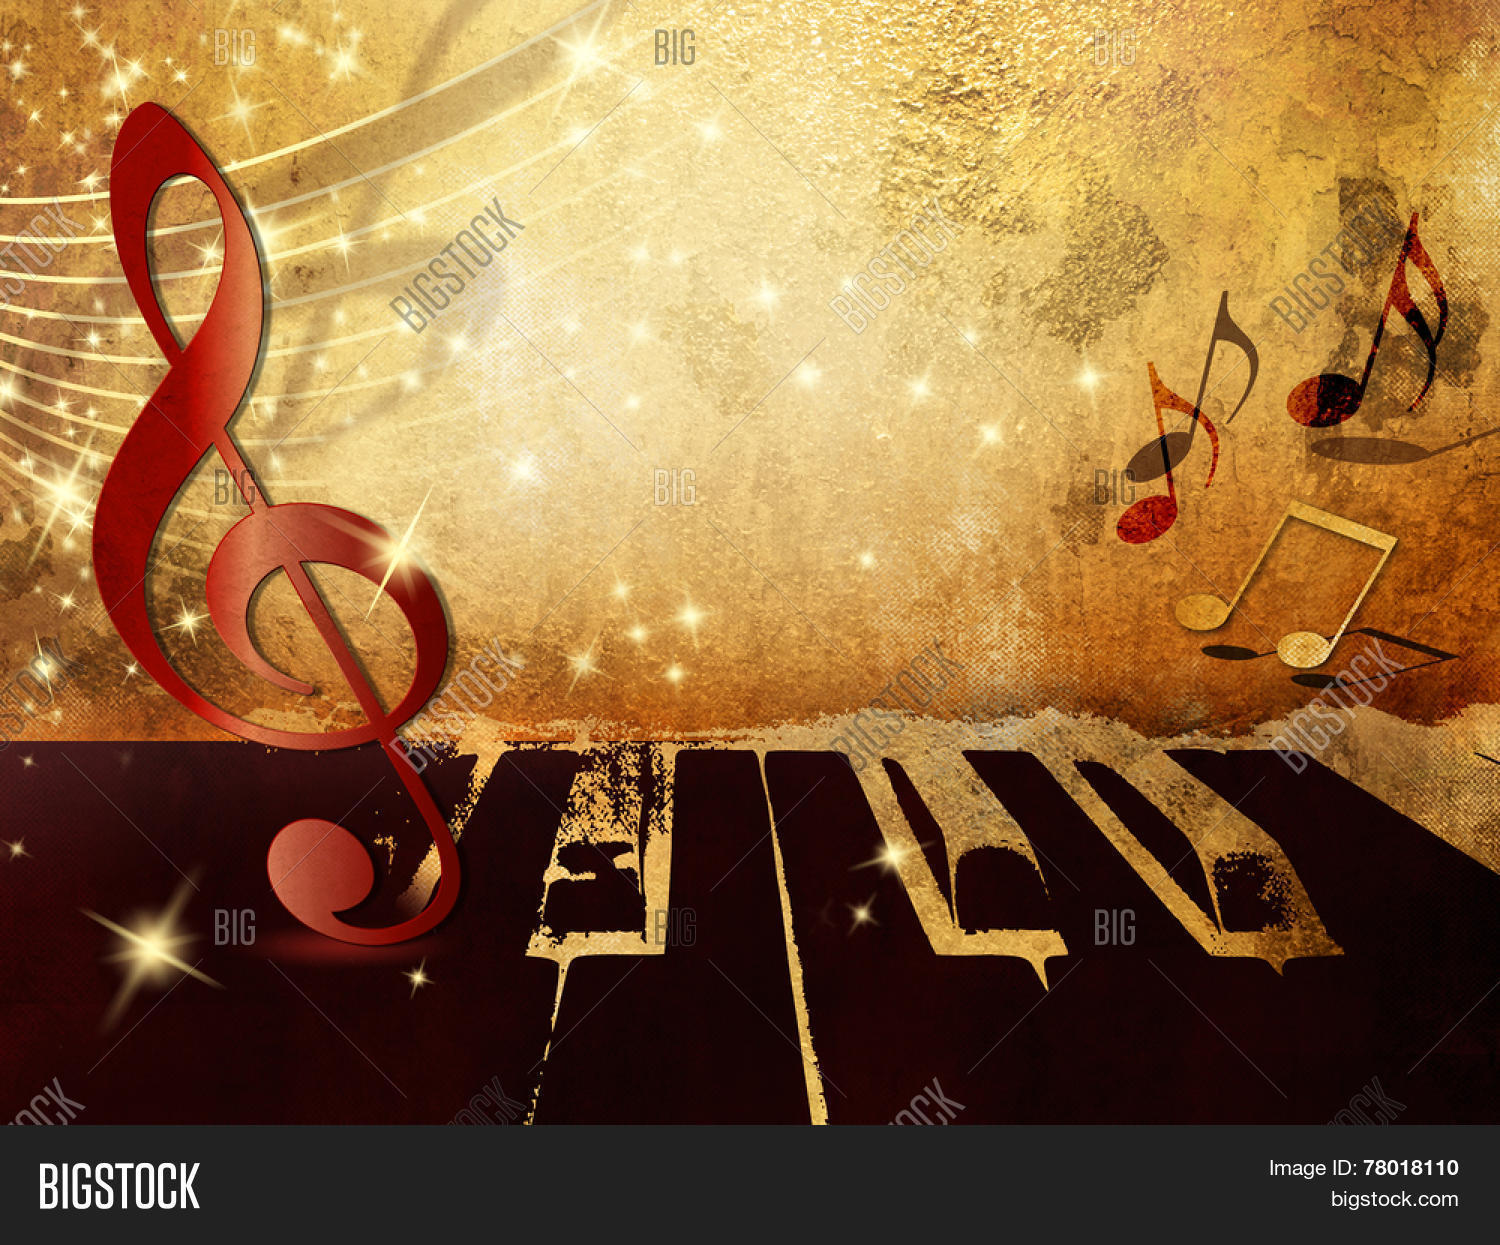 Music Background Piano Image & Photo (Free Trial) | Bigstock